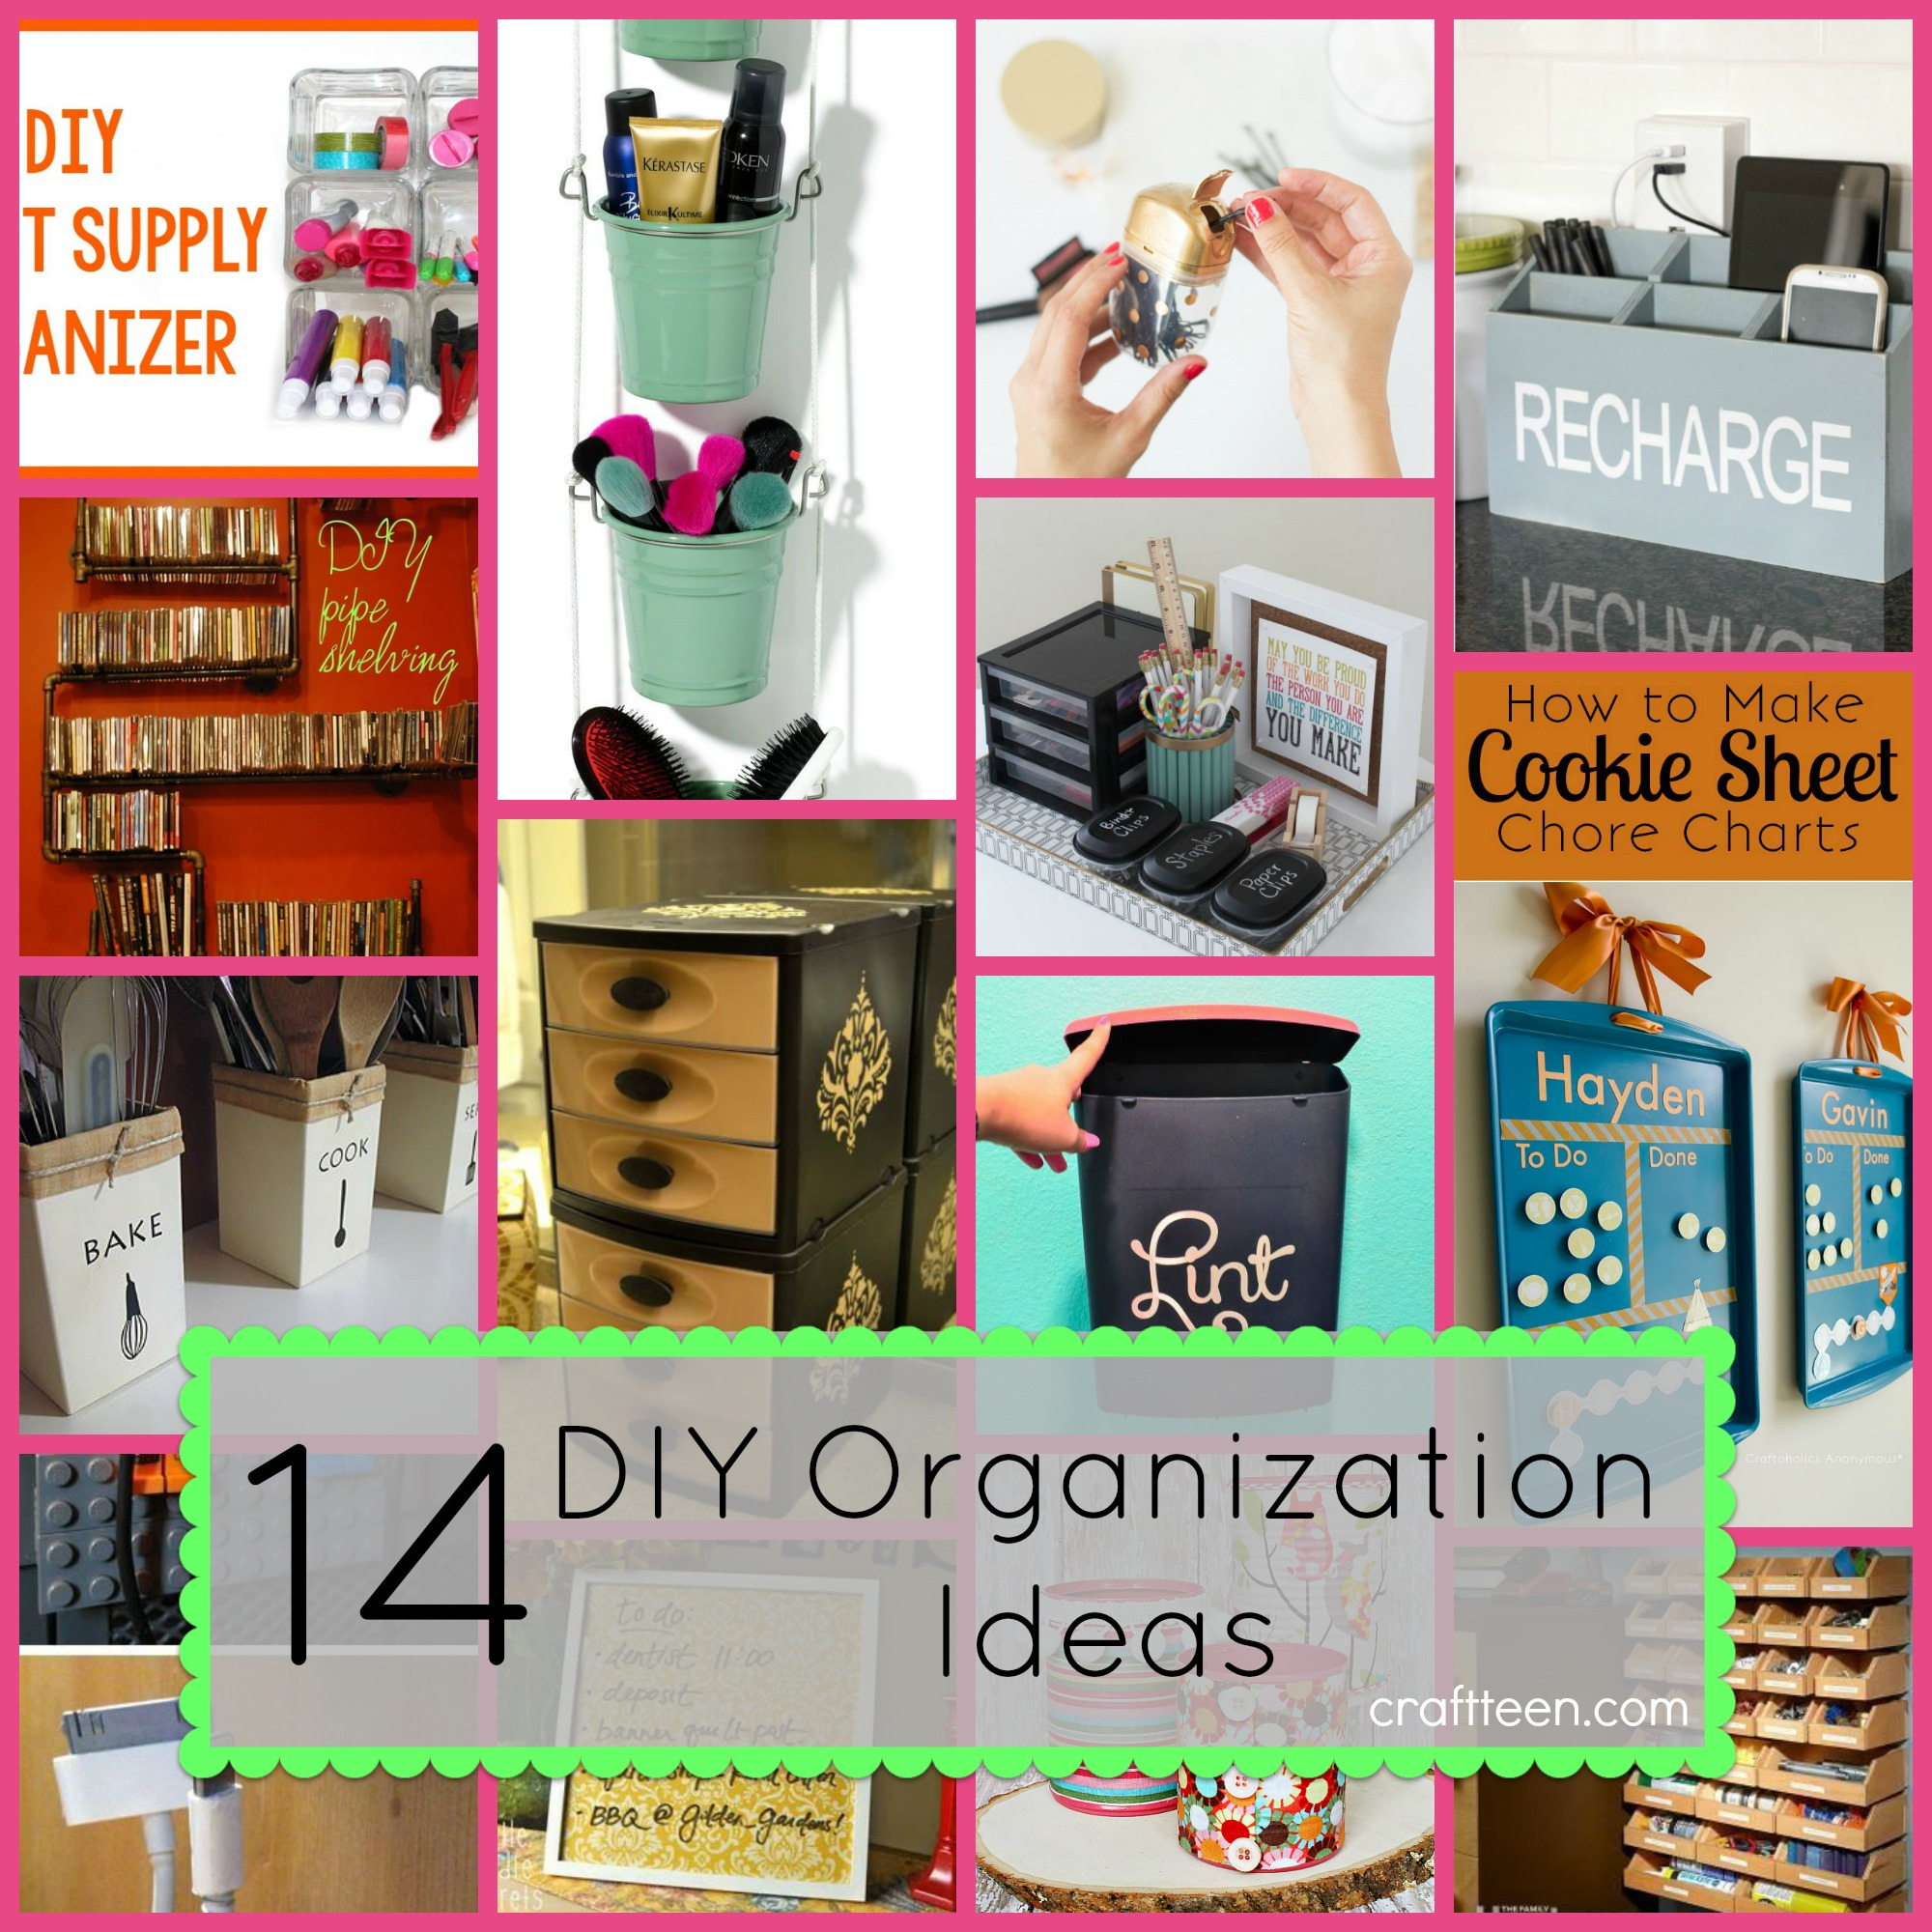 14_DIY_Organization_ideas